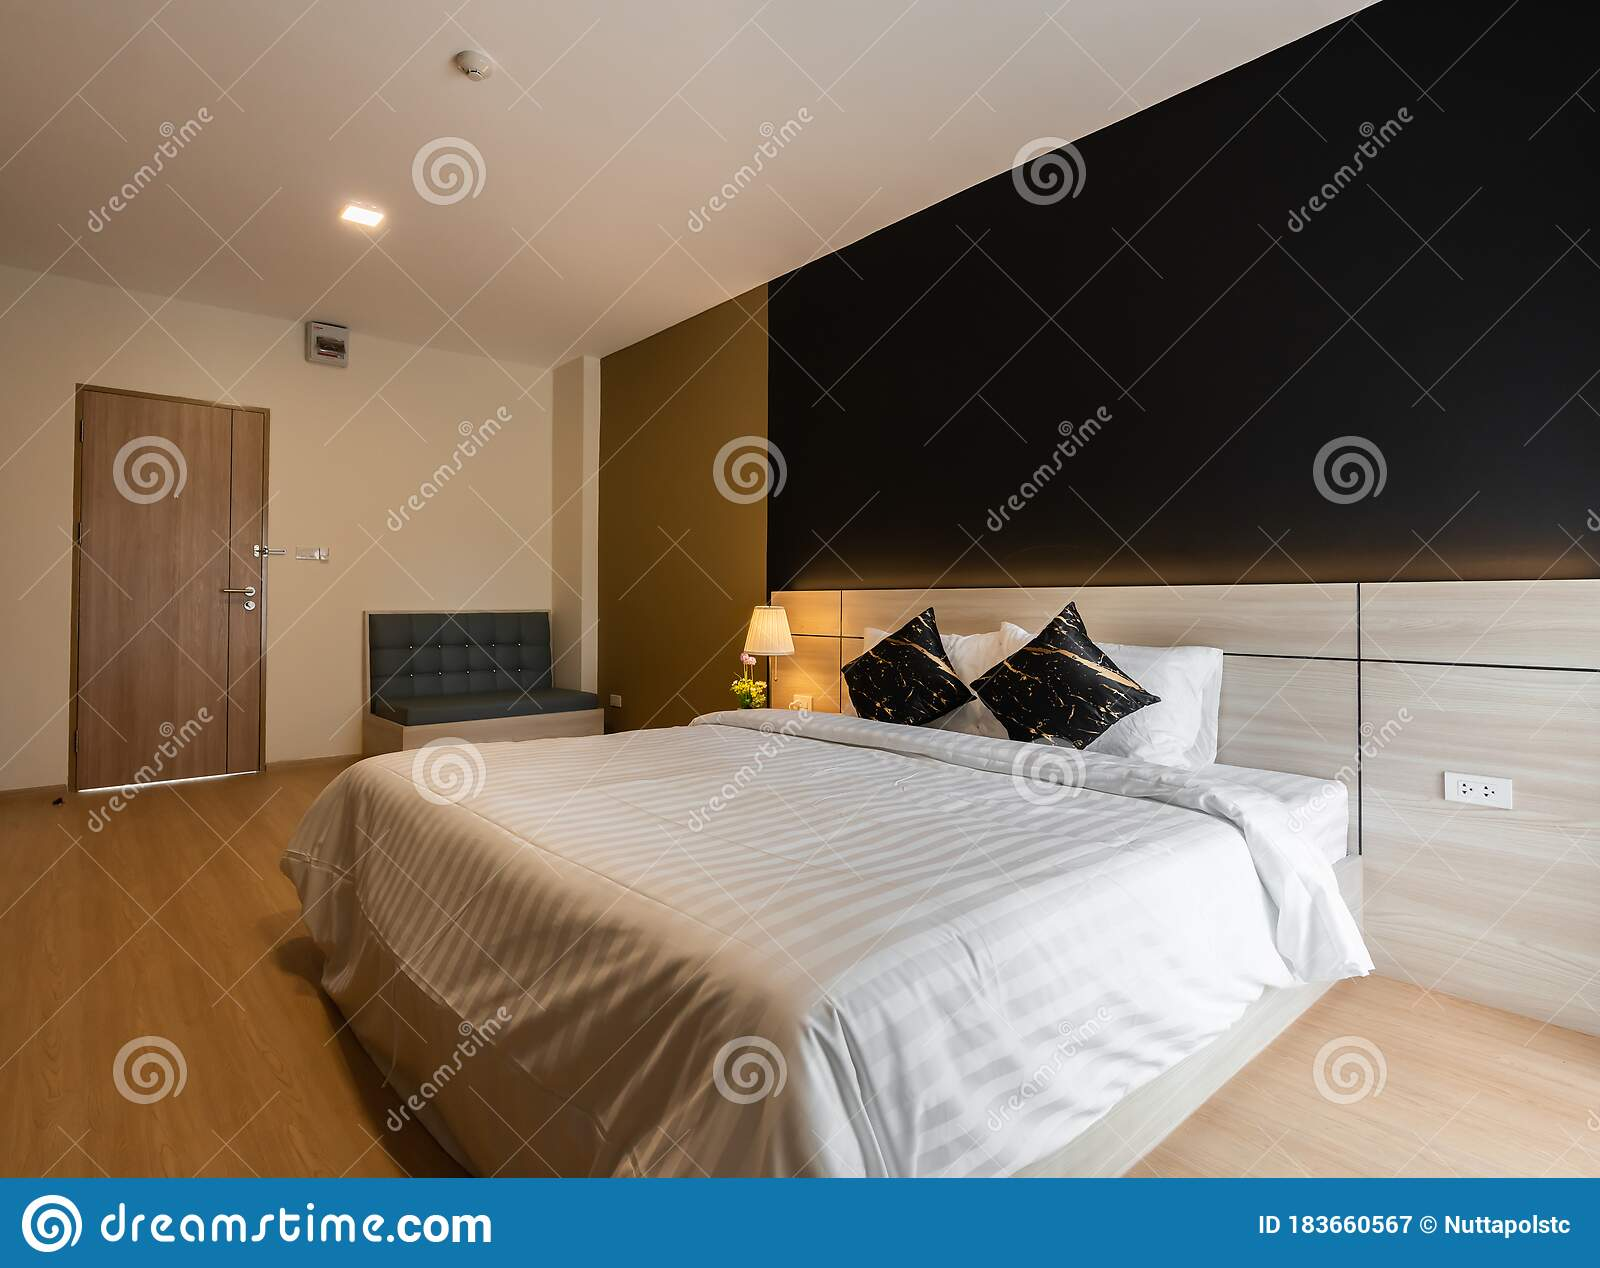 Stylish Bedroom Corner With Wooden Headboard And Bed With Soft Pillows Setting With Navy Blue And Yellow Painted Wall On The Stock Image Image Of Nice Light 183660567